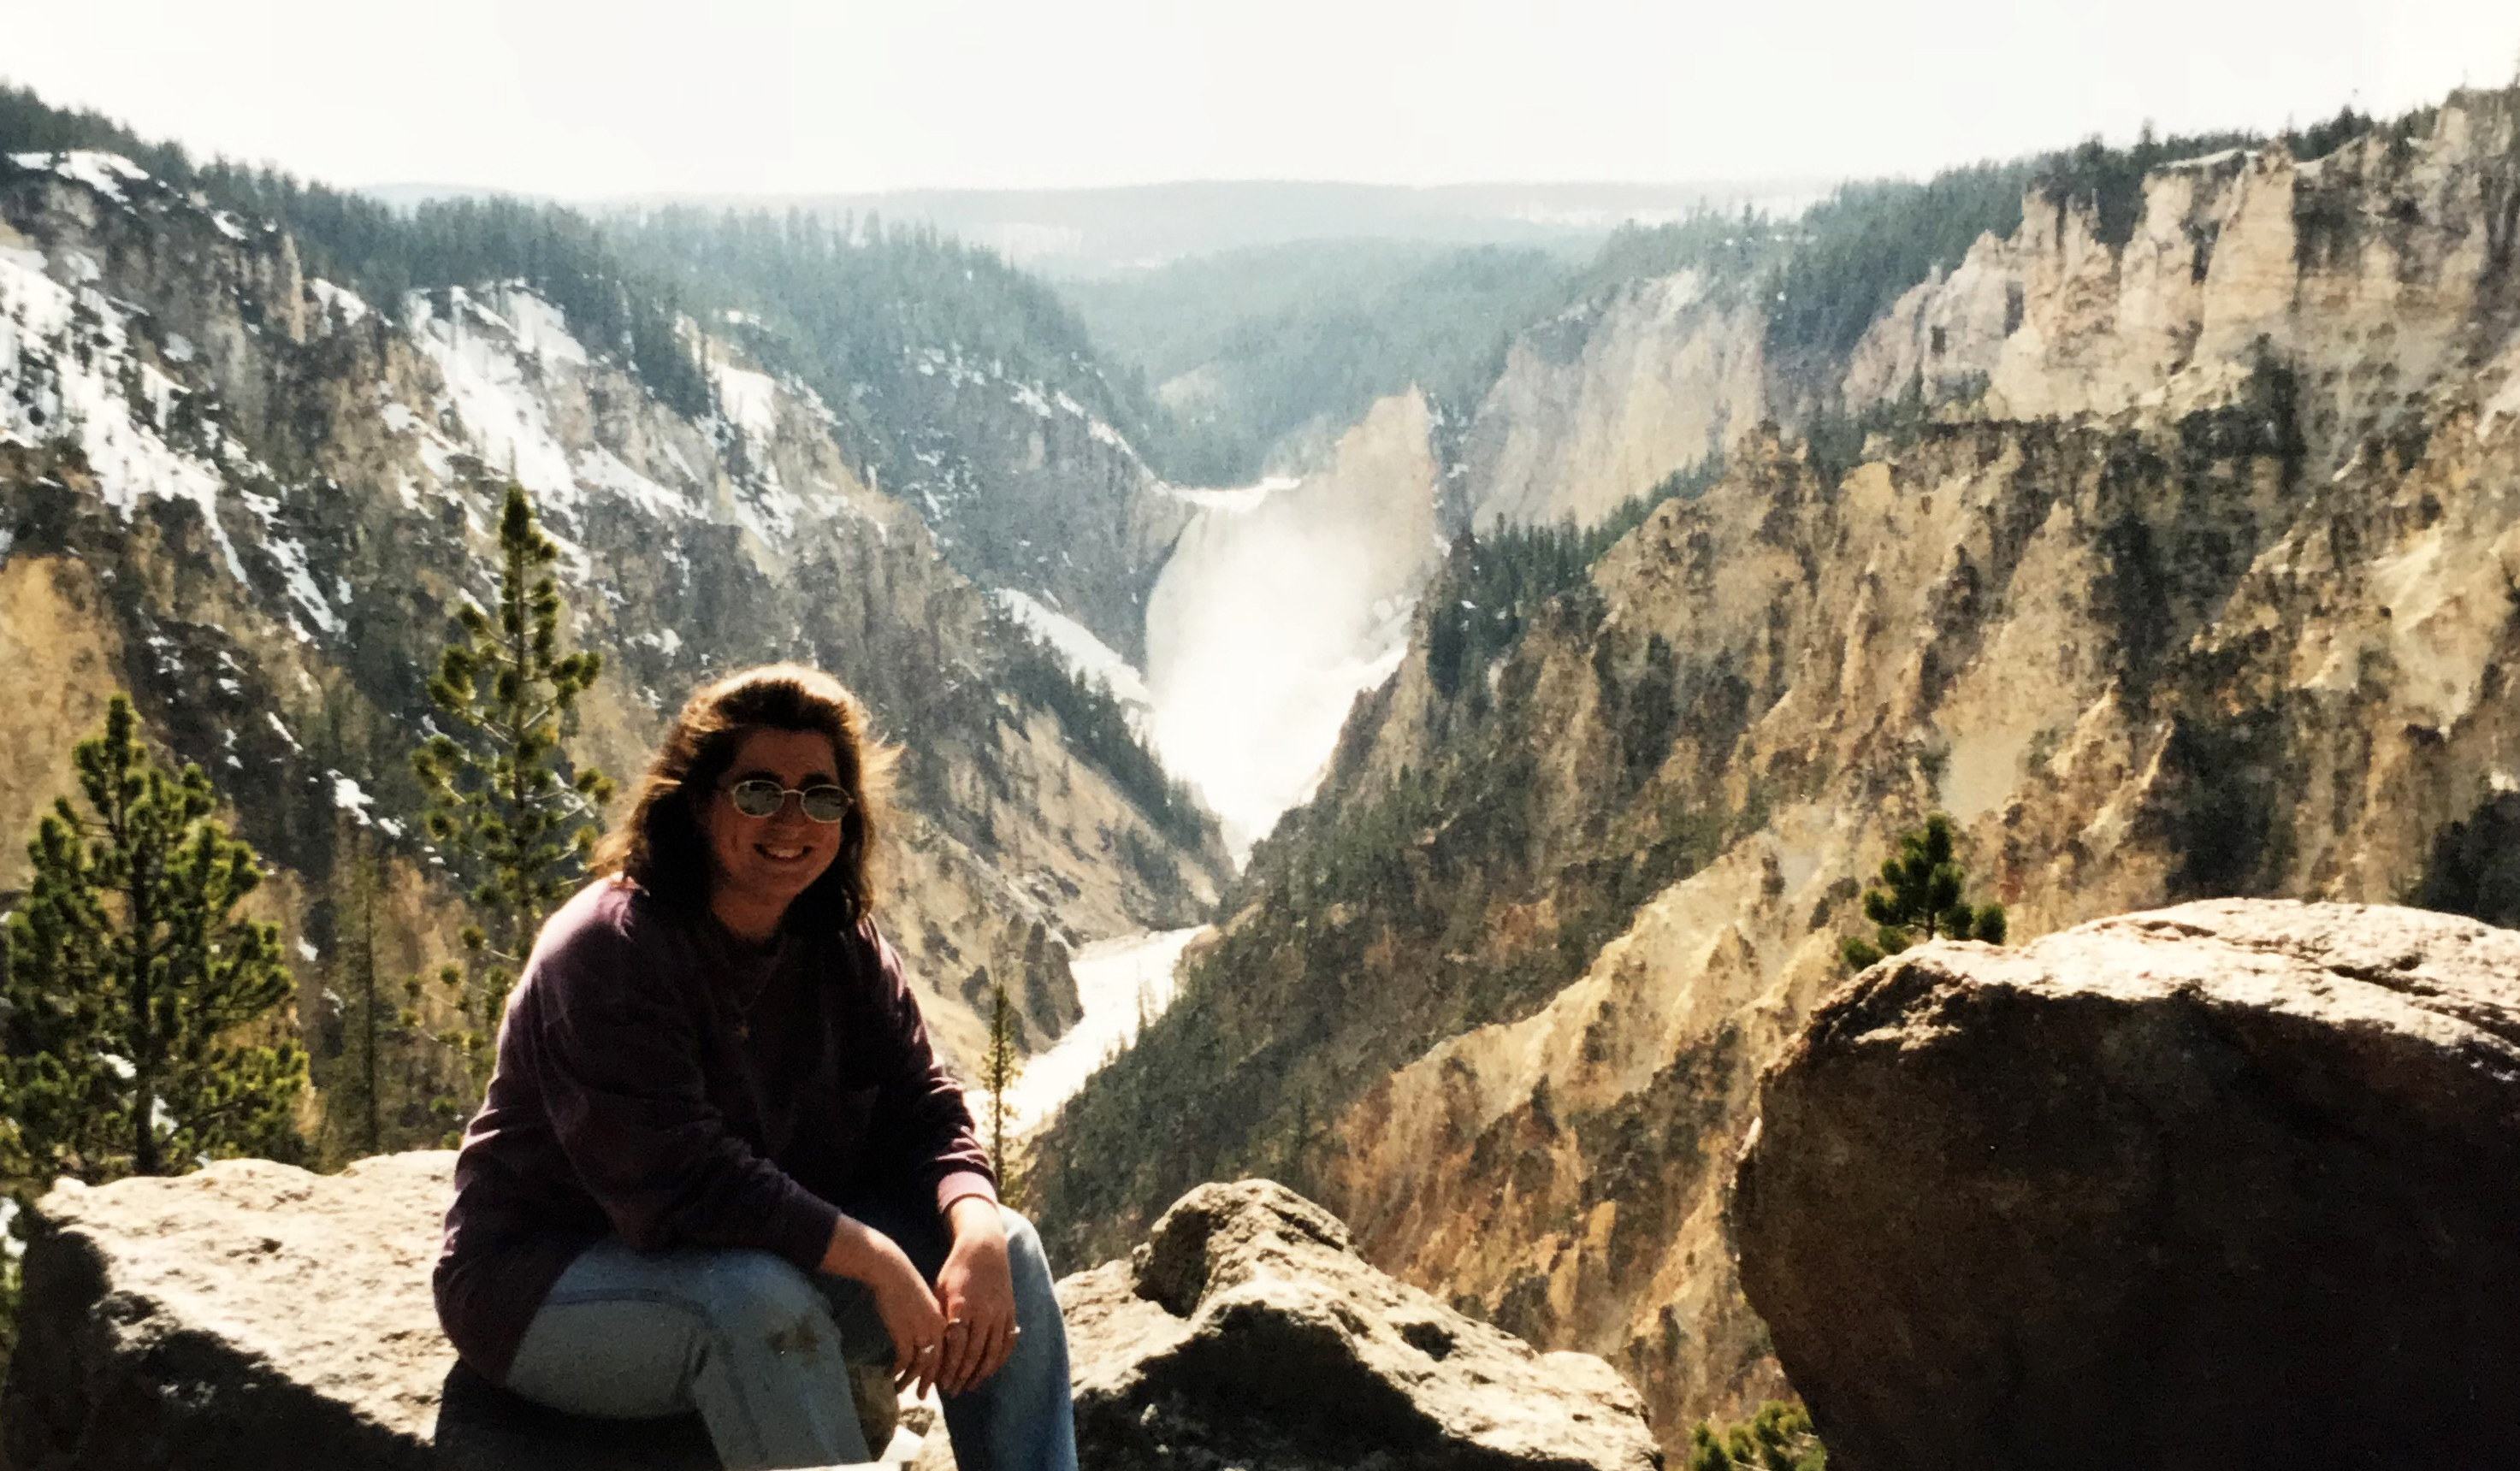 writer Kate Vanskike atop a mountain looking over the Grand Canyon of Yellowstone, Yellowstone National Park